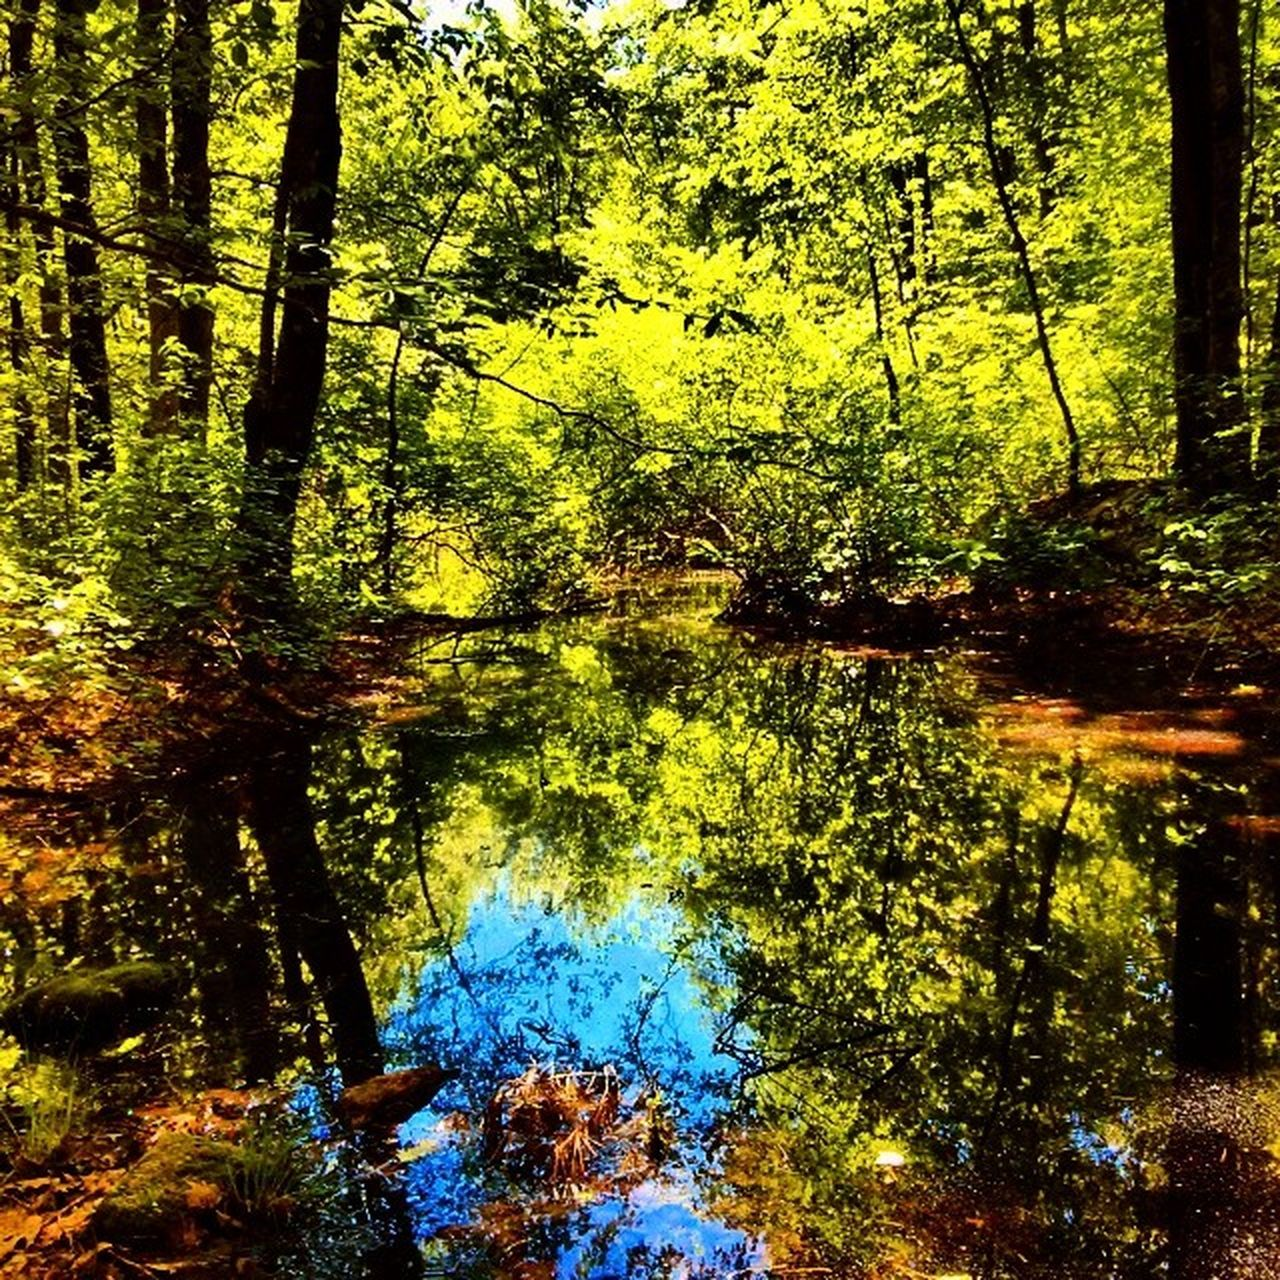 reflection, forest, nature, tree, growth, water, day, beauty in nature, outdoors, tranquility, no people